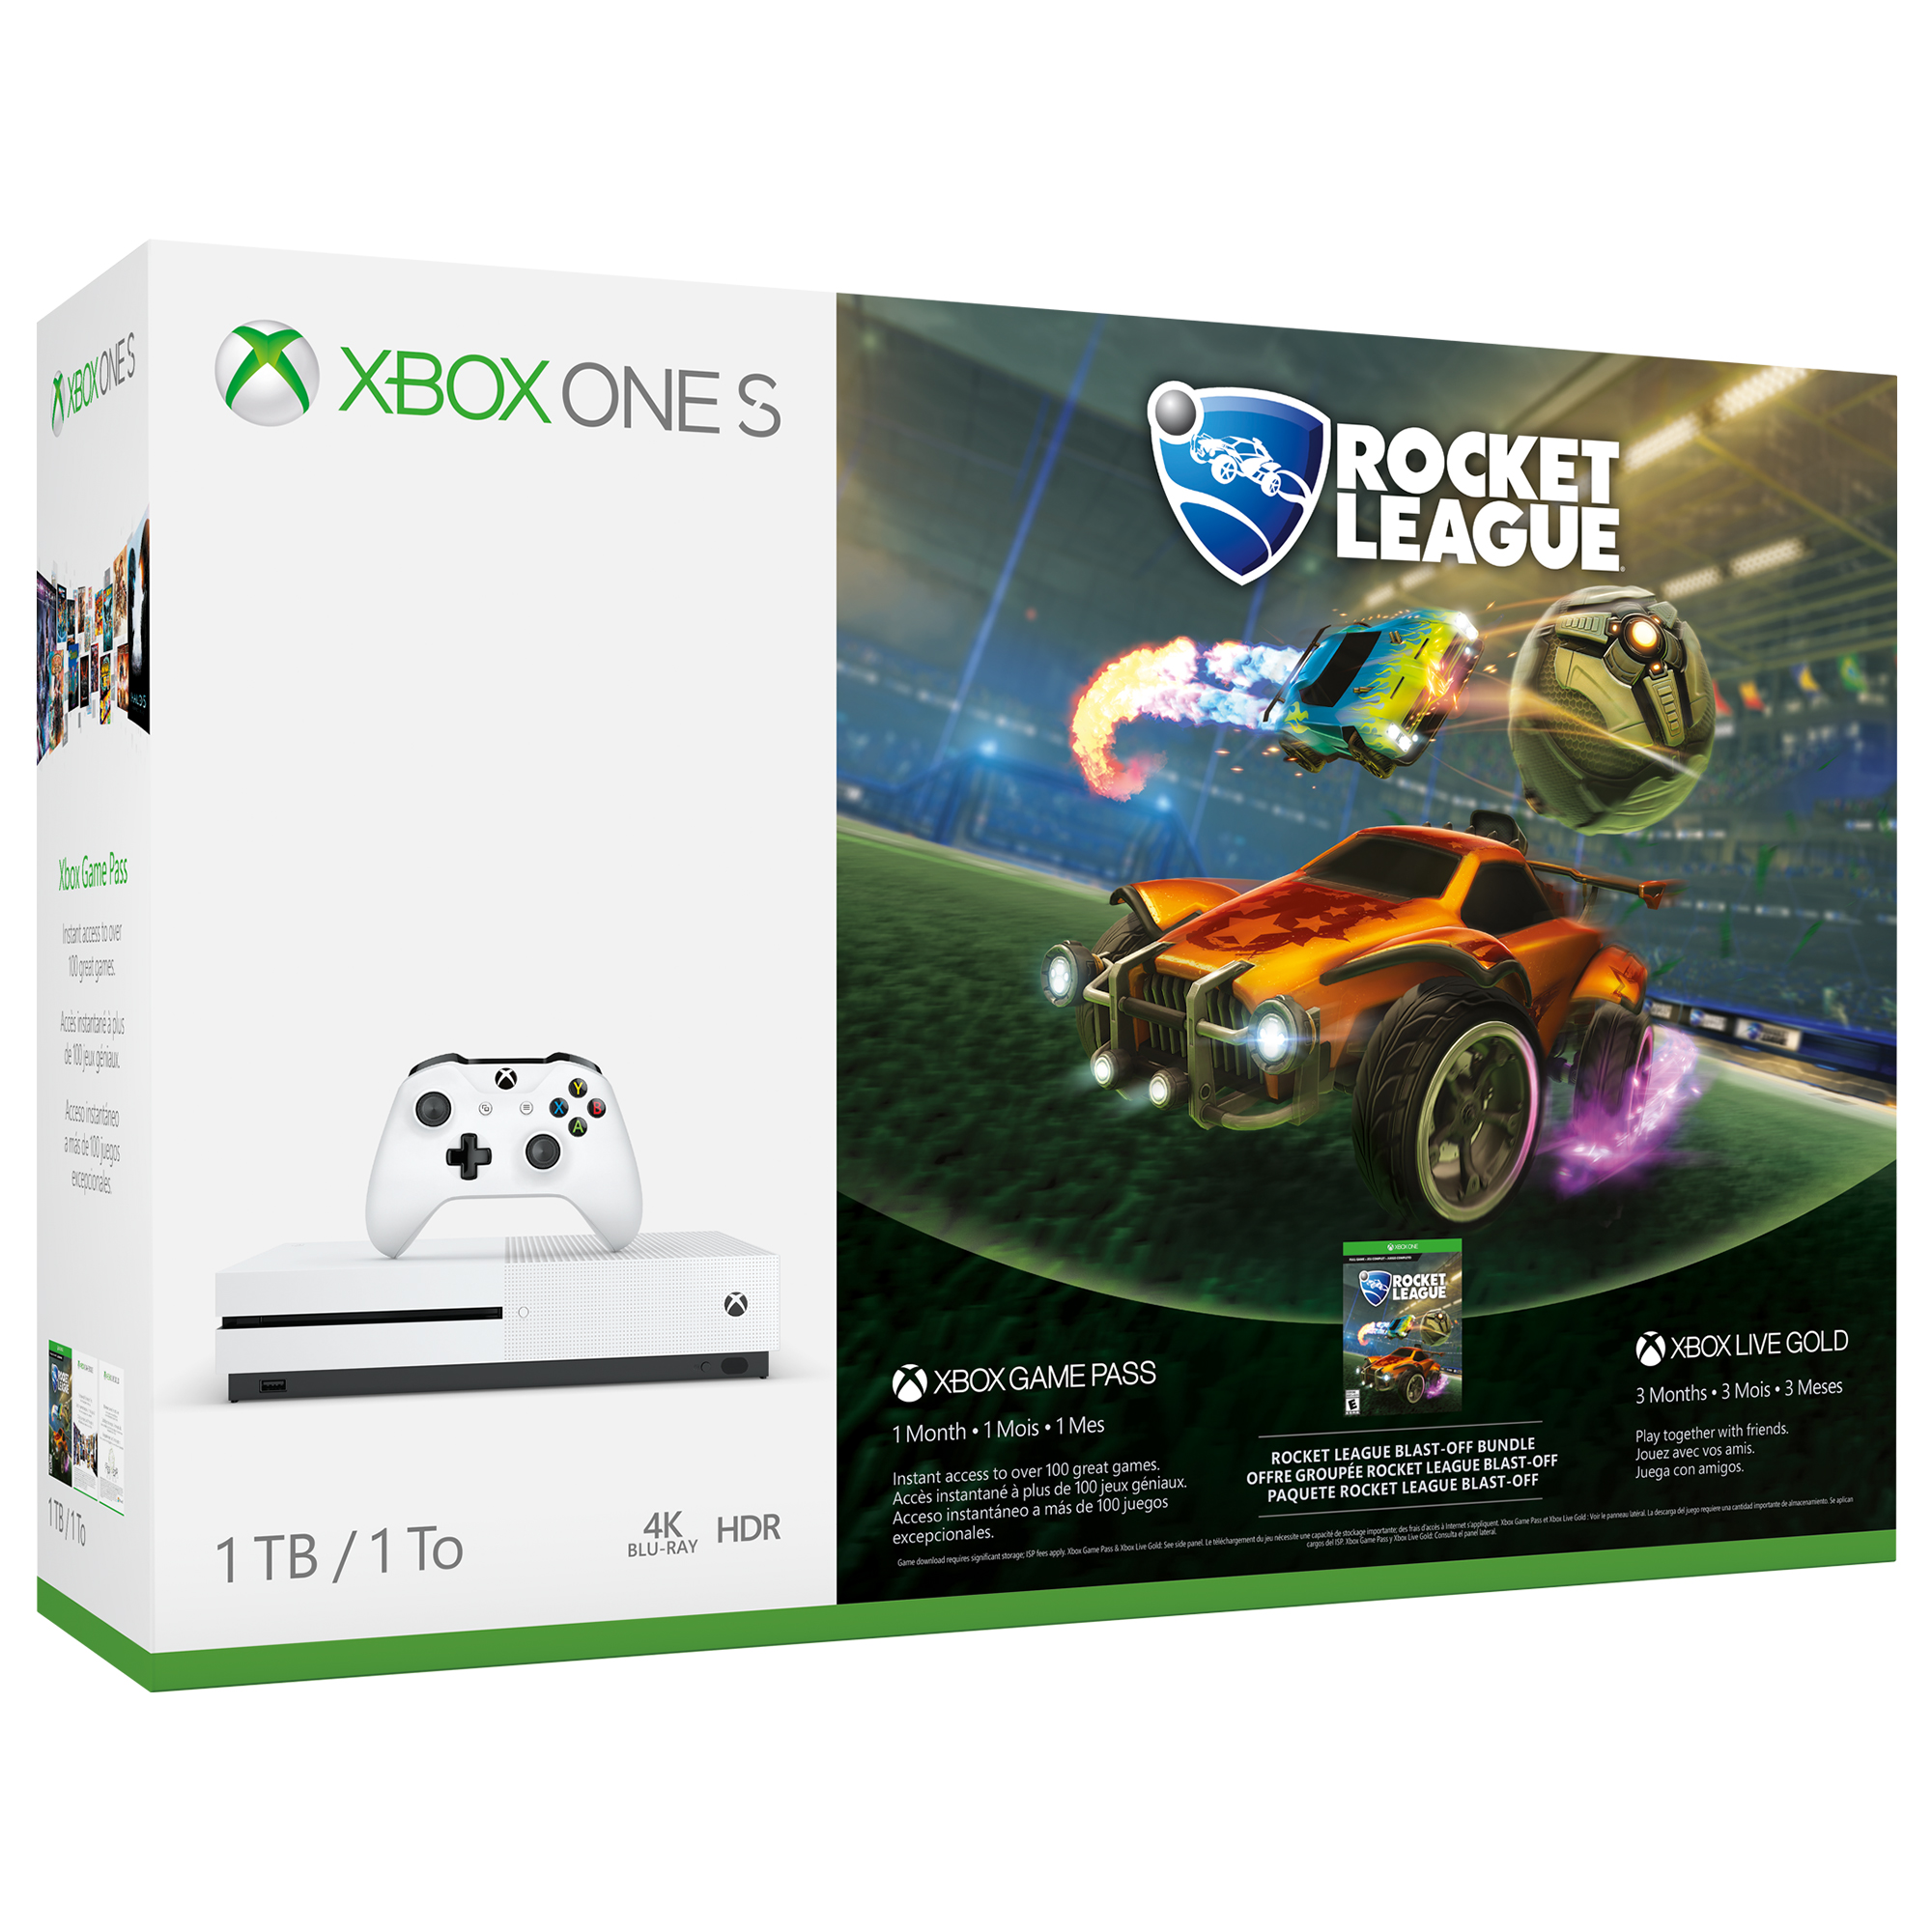 Refurbished Microsoft Xbox One S 1TB Rocket League Bundle, White, 234-00370